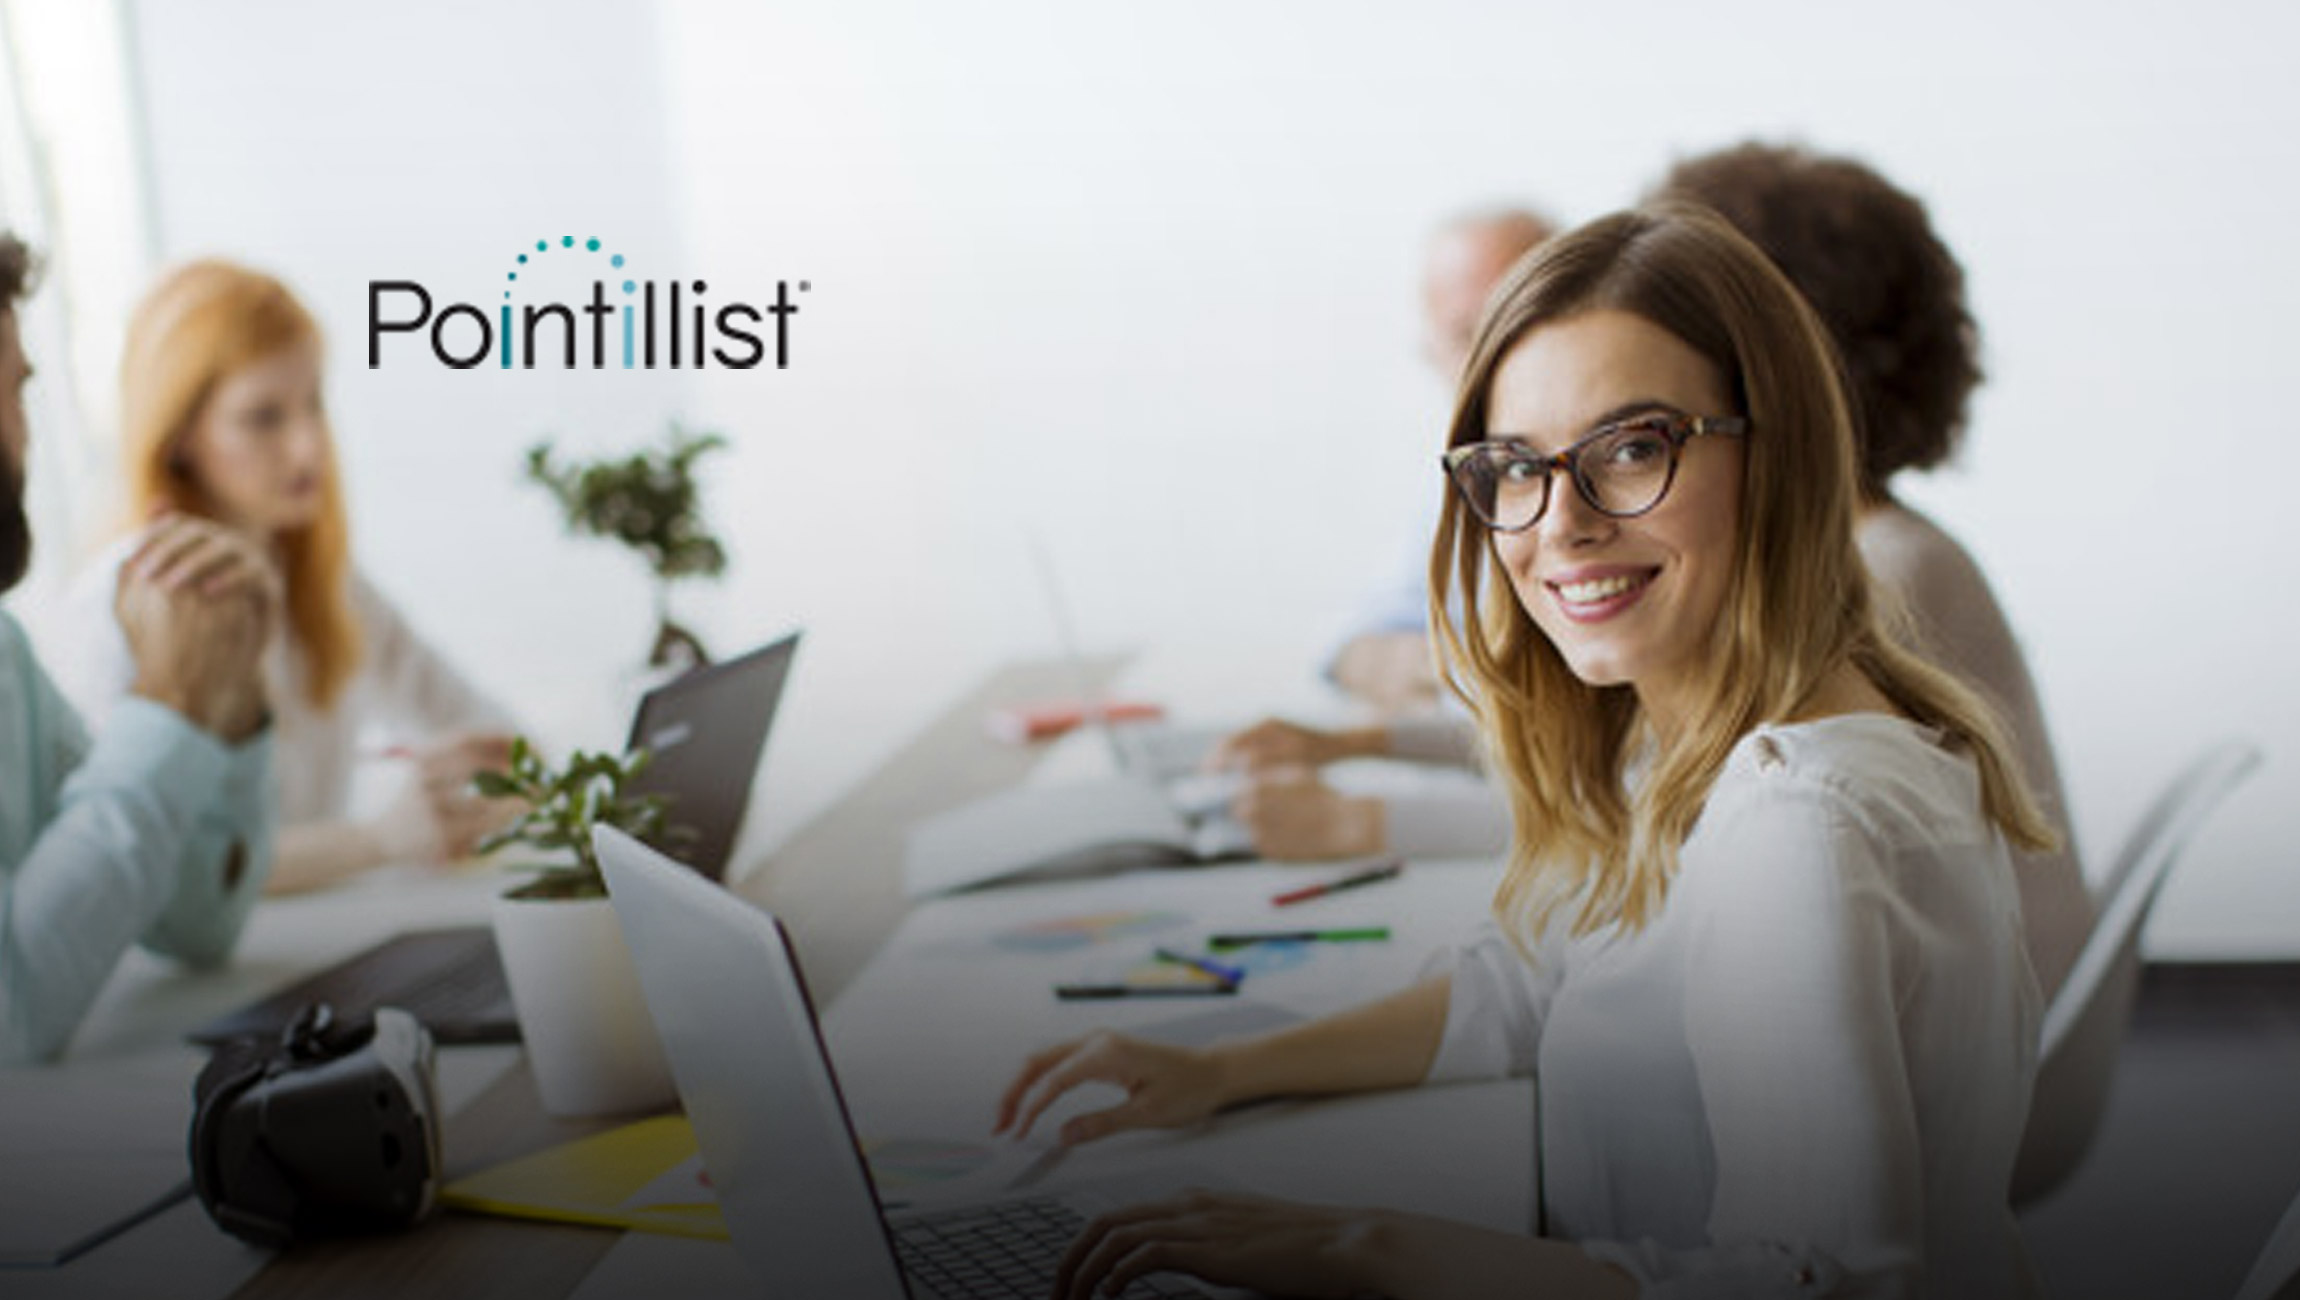 Pointillist Cited as a Leader in Journey Orchestration Platforms by Independent Research Firm